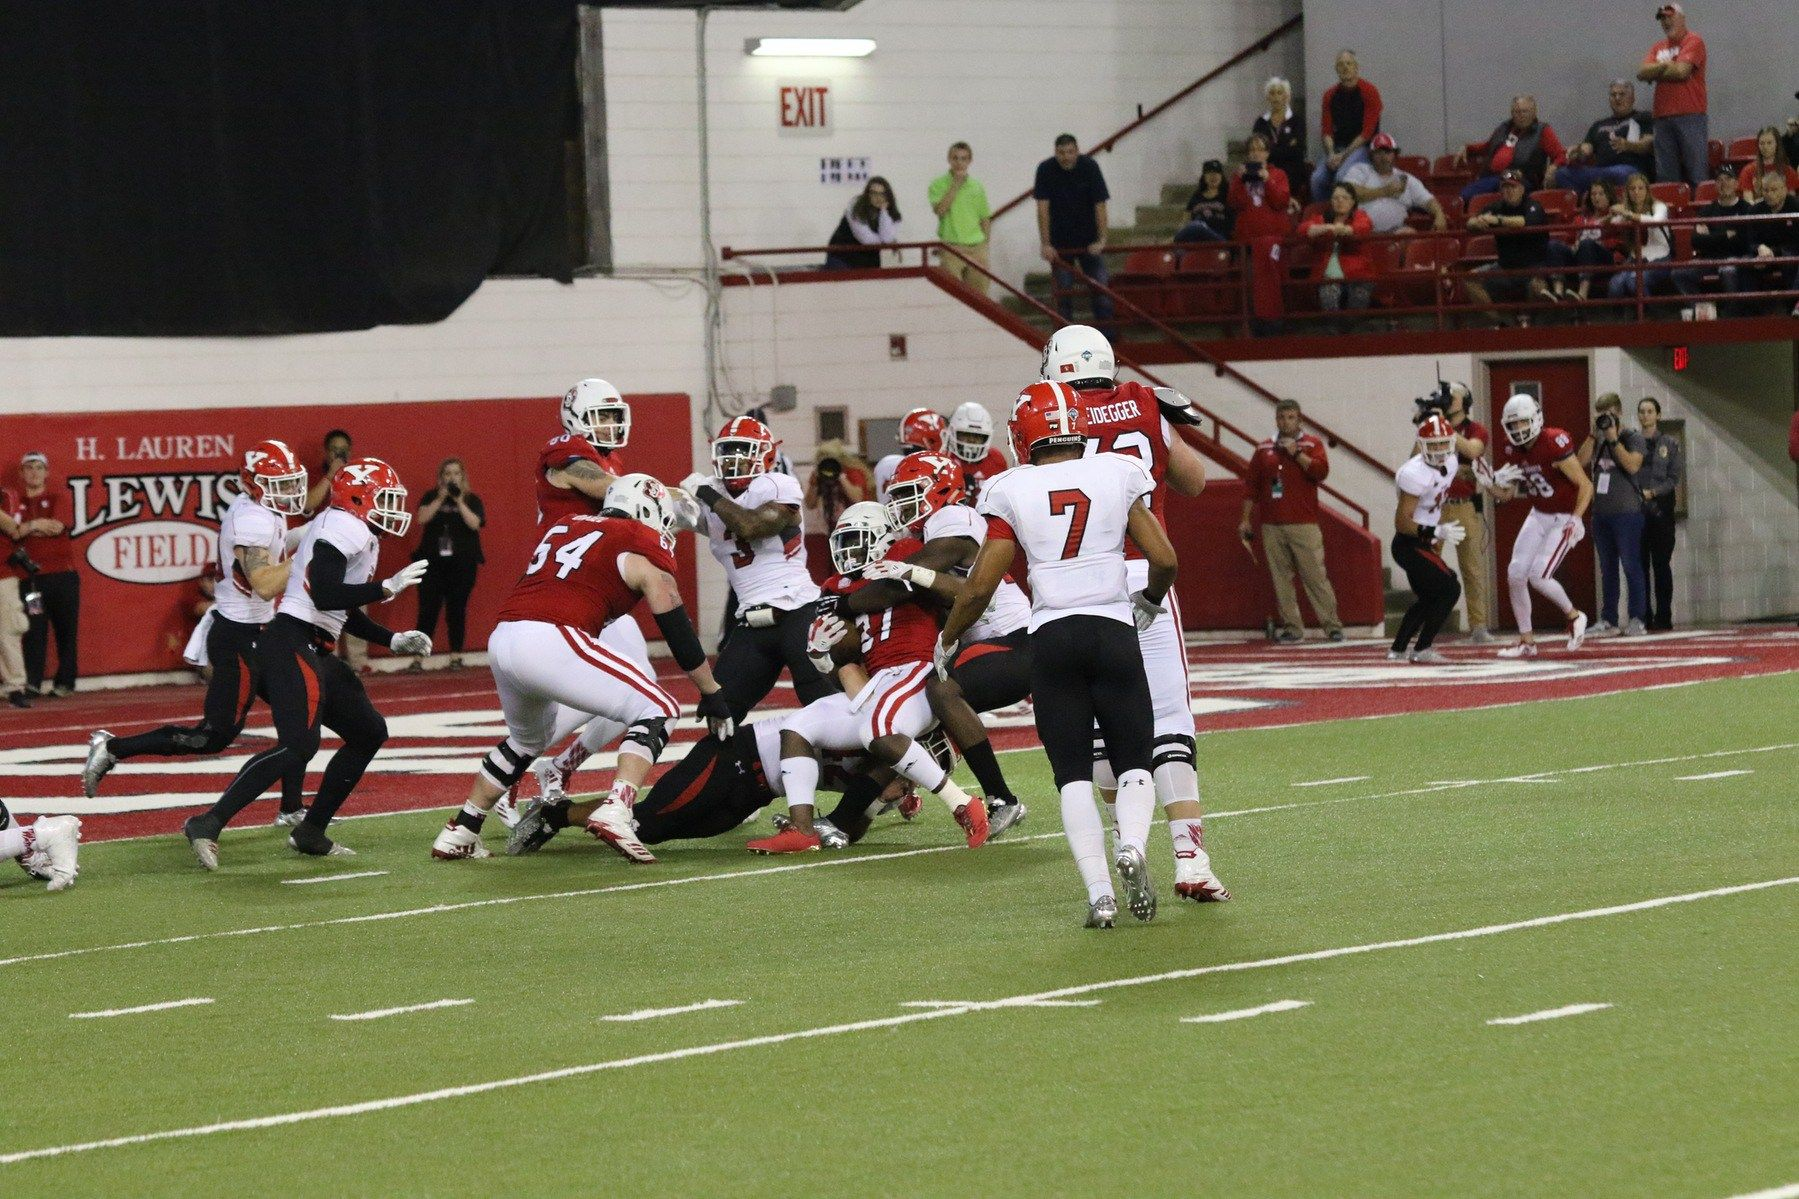 Late field goal gives south dakota win over youngstown